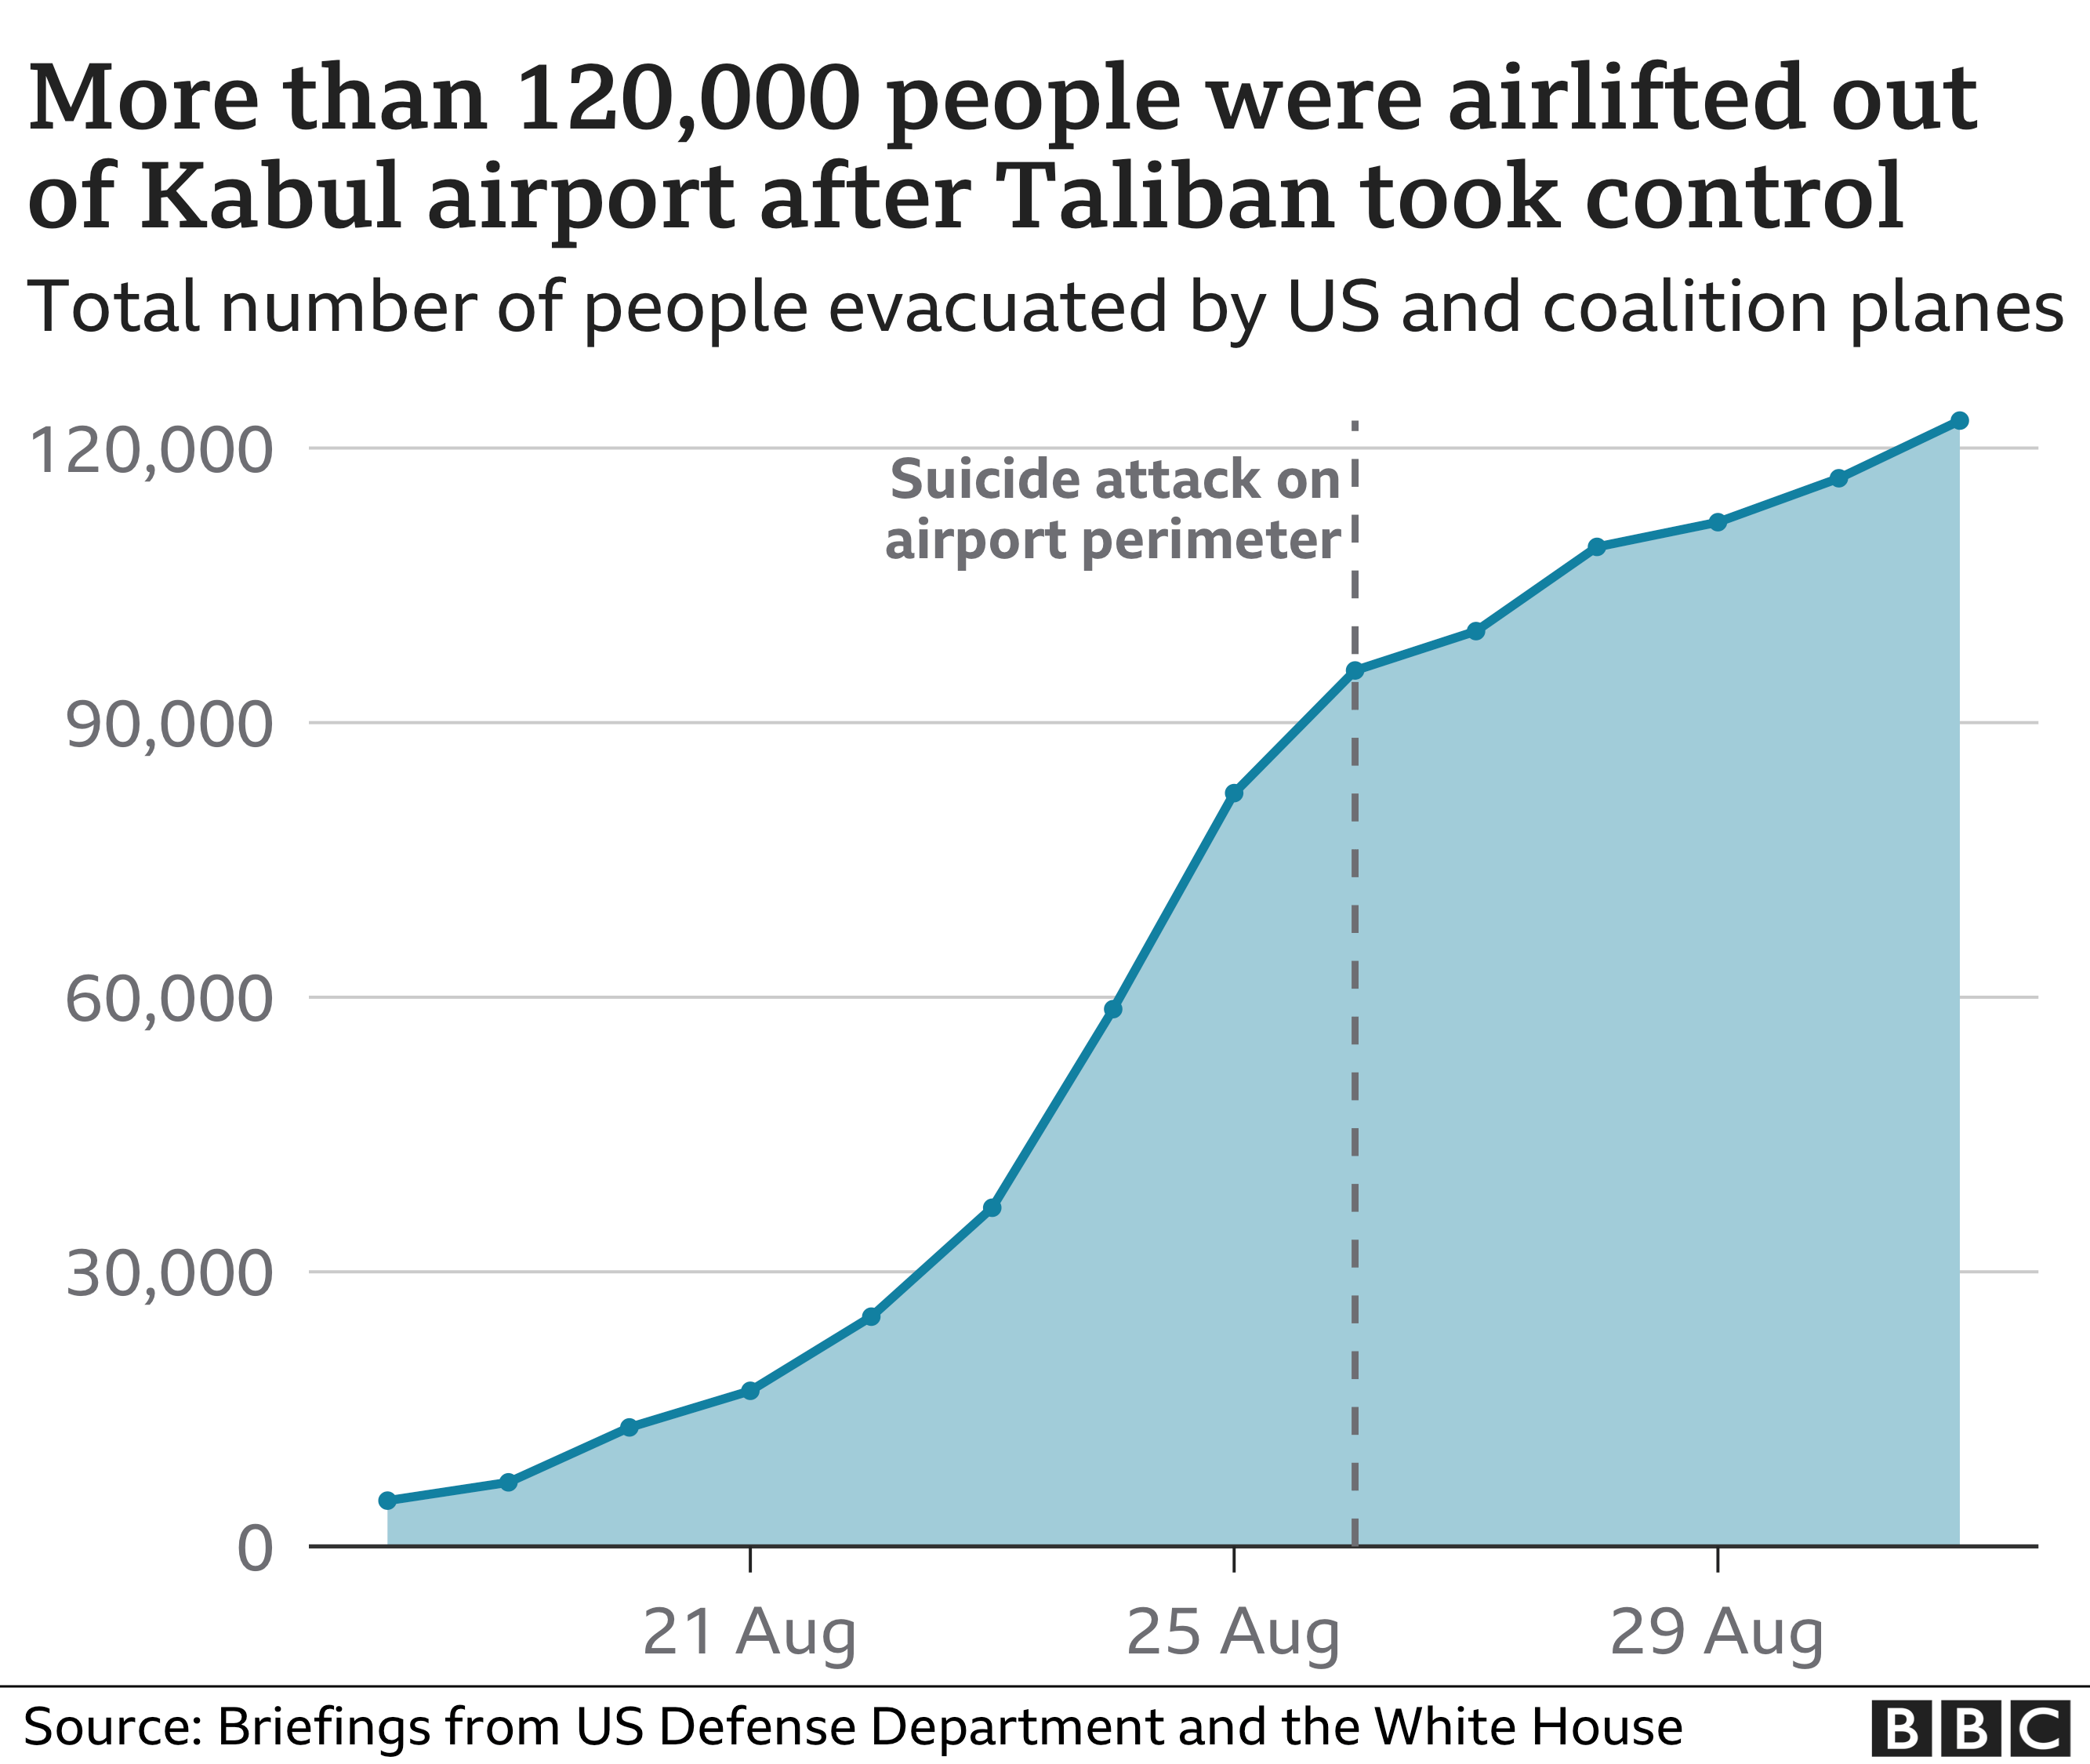 Evacuations since Taliban takeover